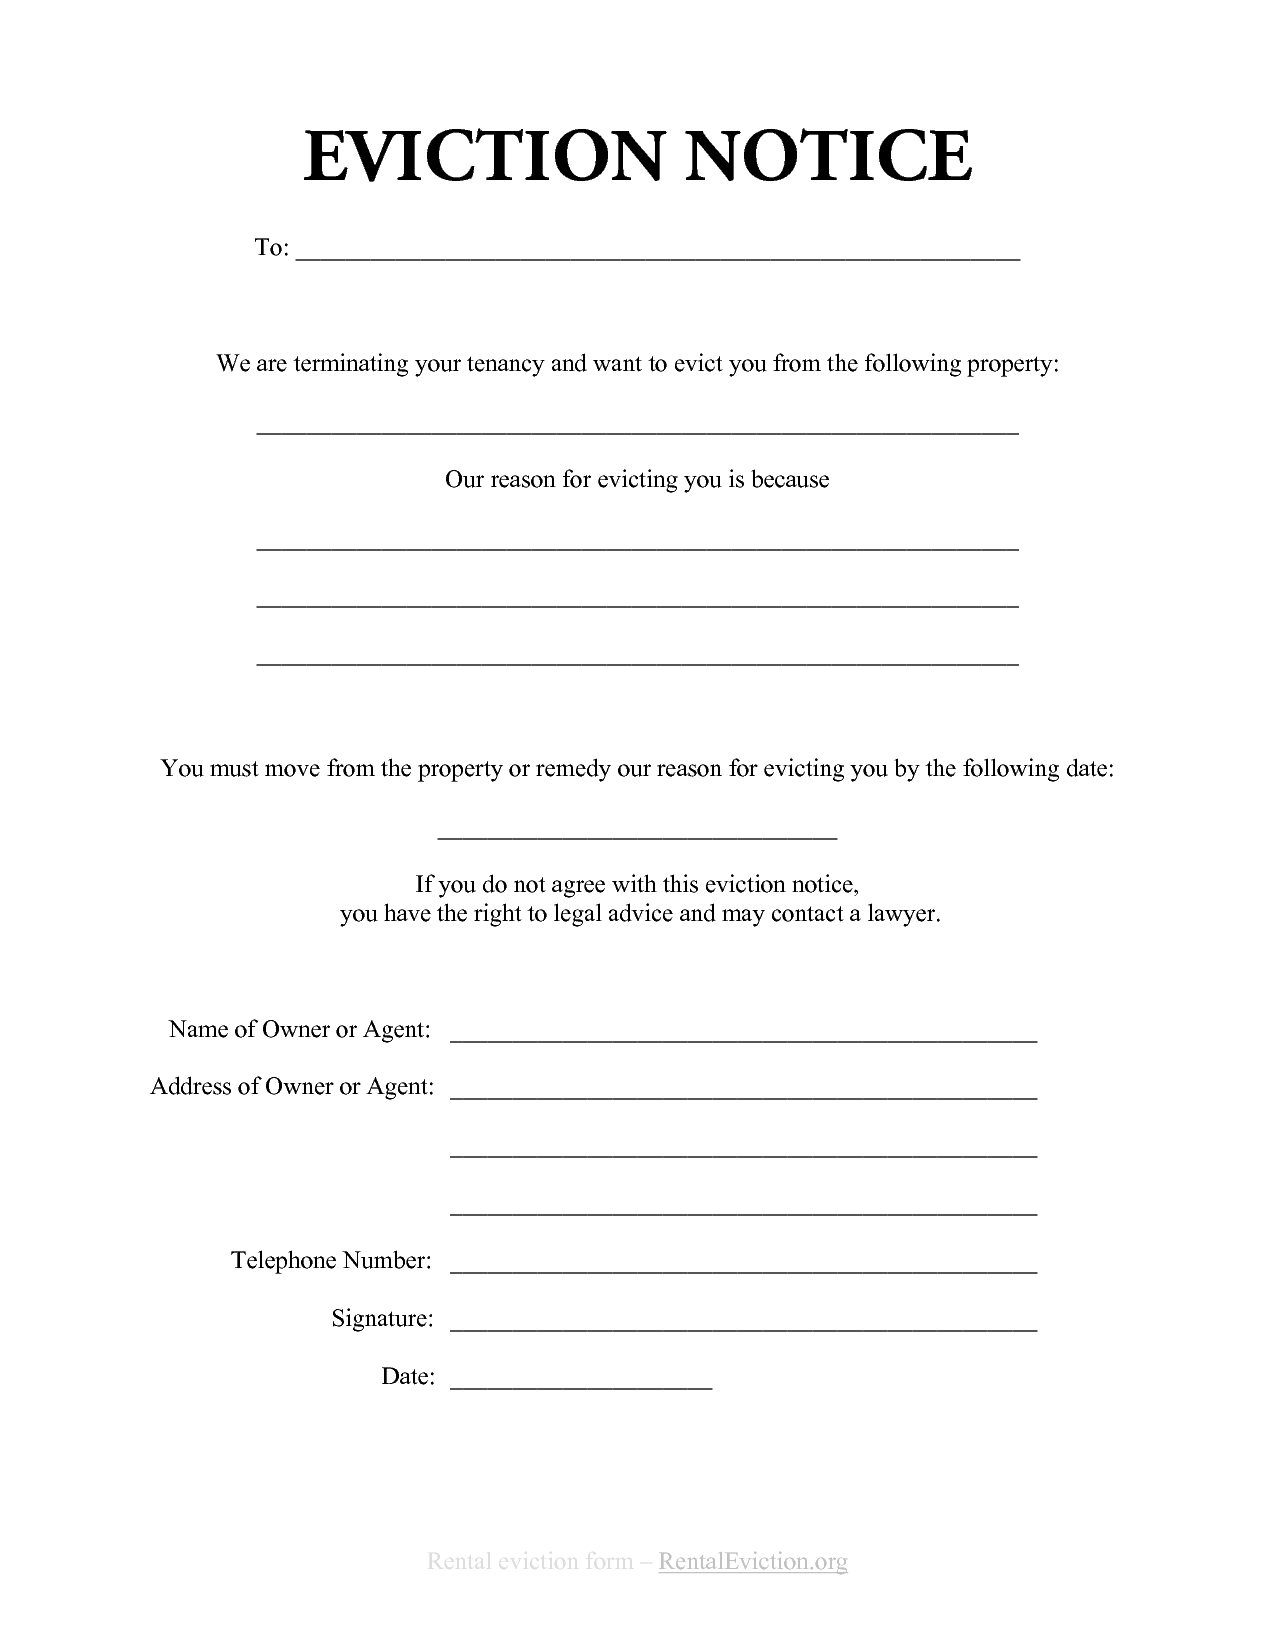 Roommate Eviction Letter Template - Free Print Out Eviction Notices Free Rental Eviction Notice